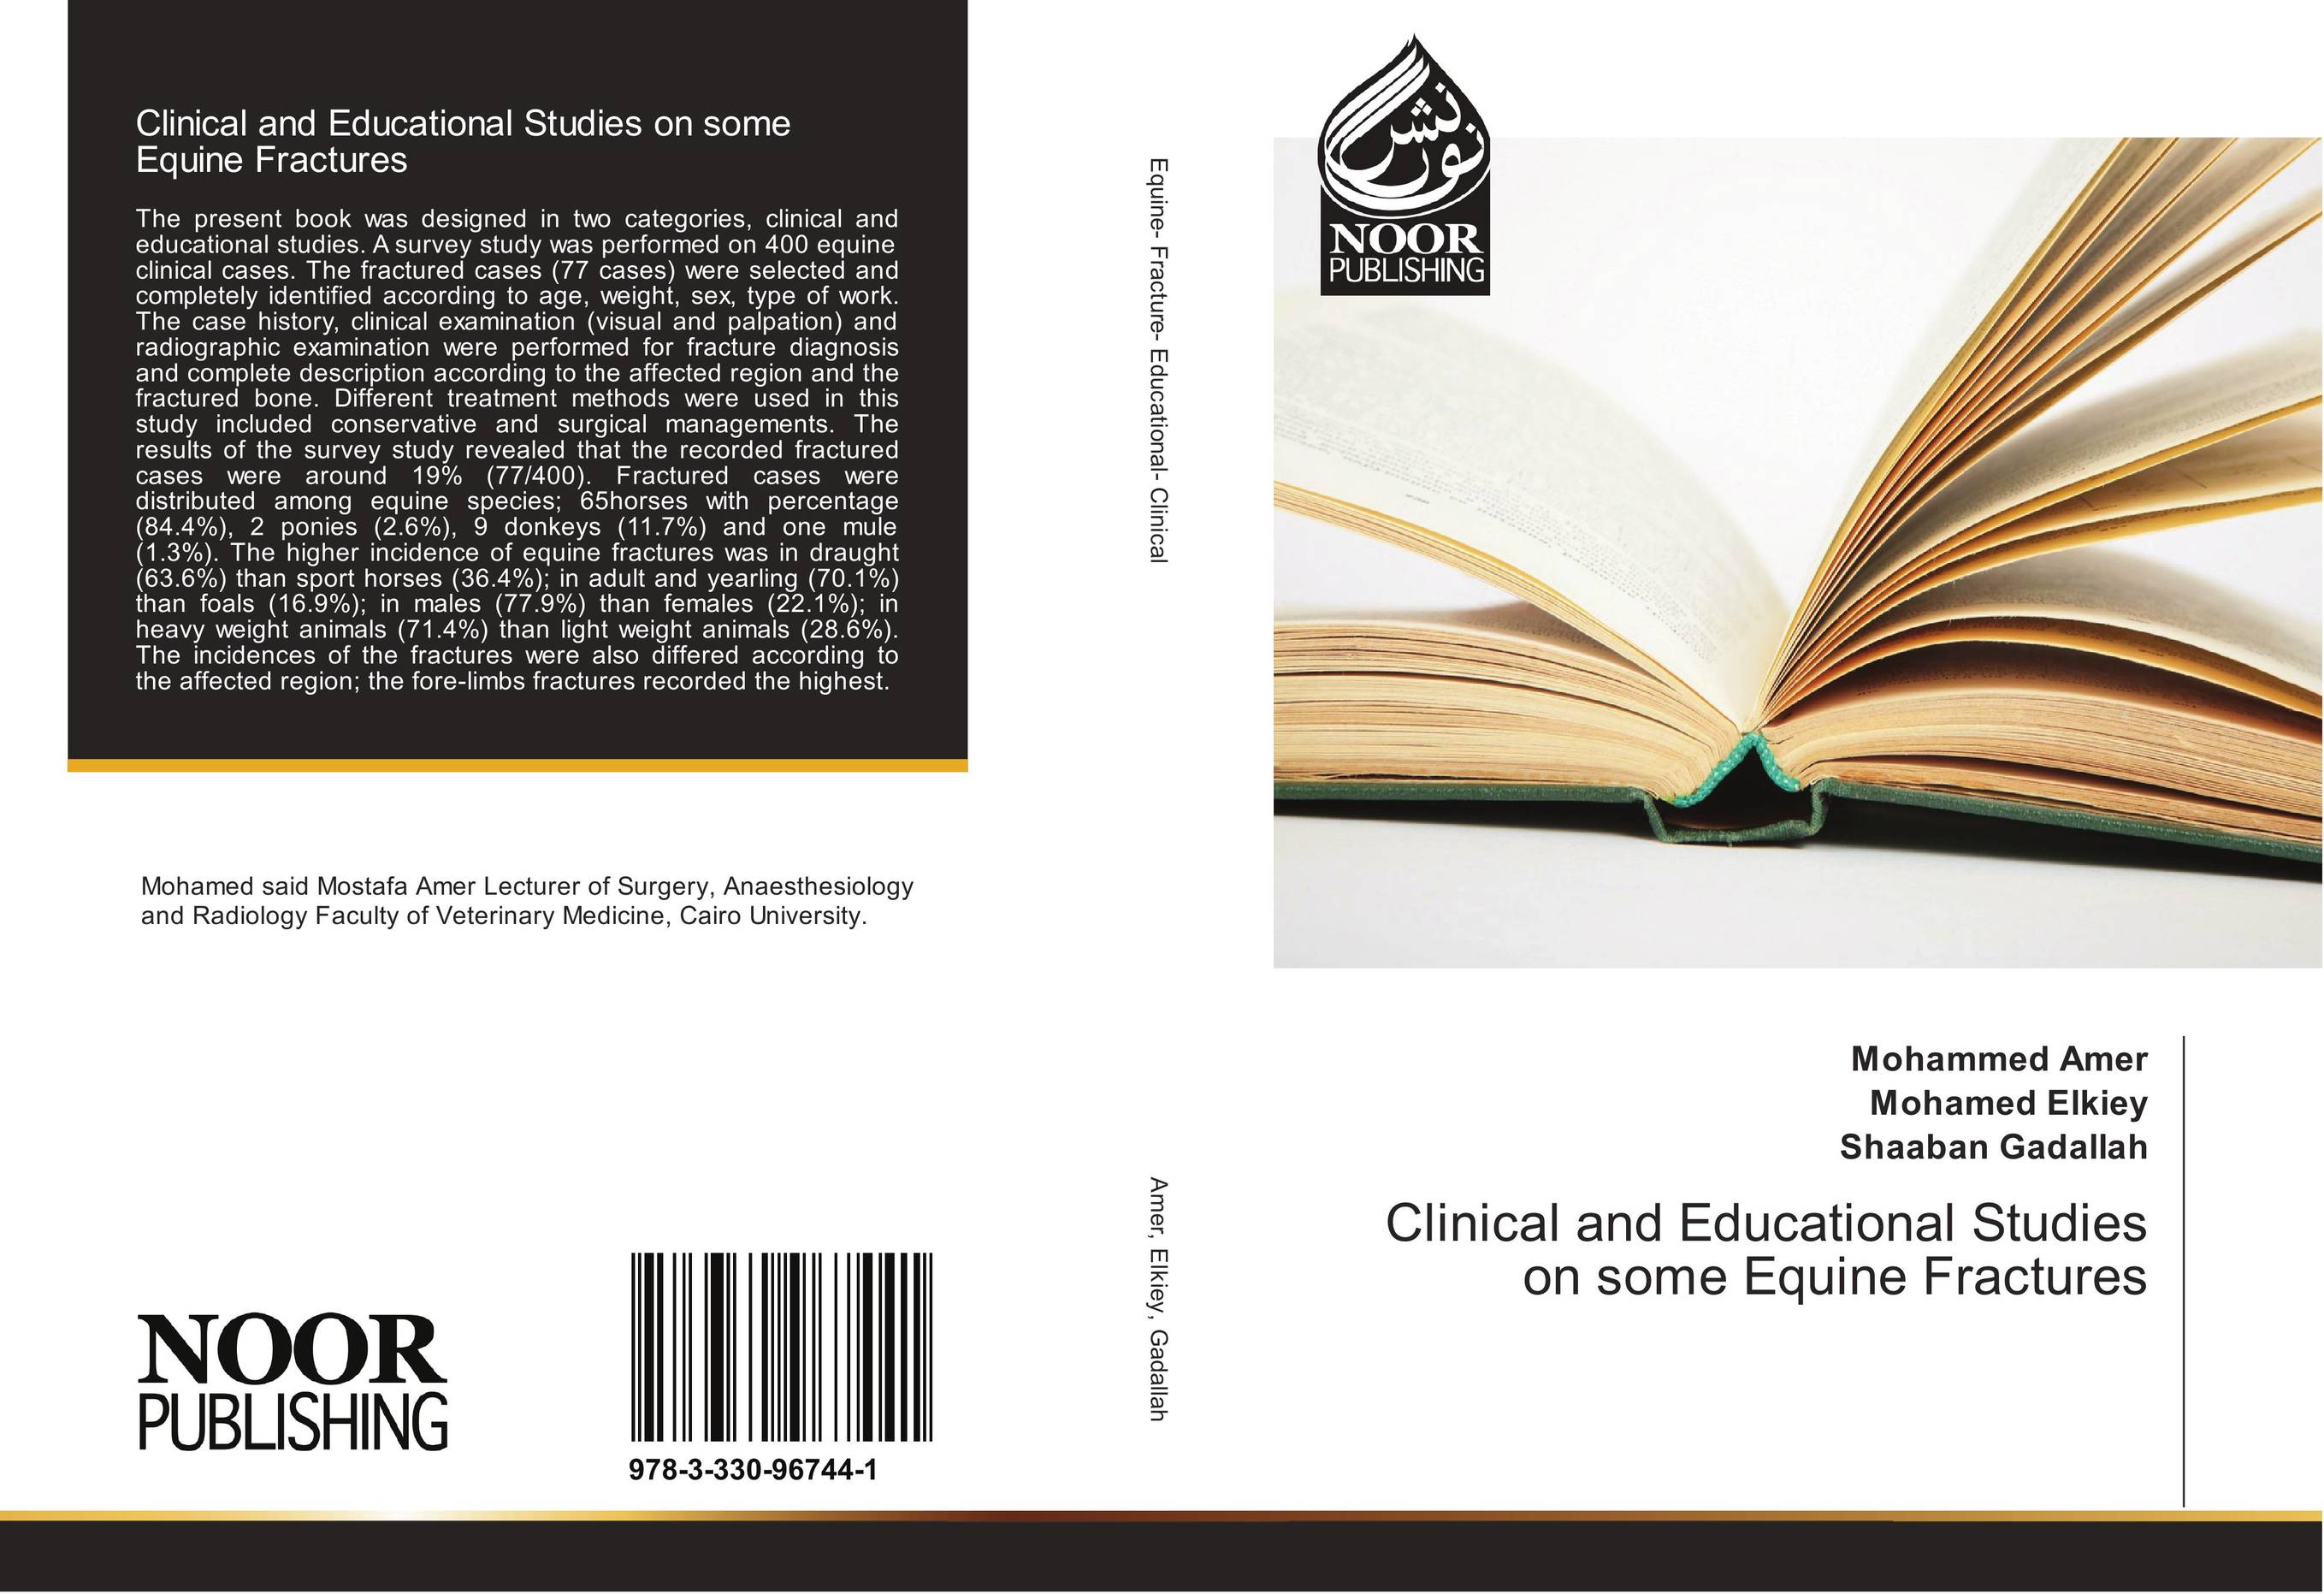 9783330967441 Clinical and Educational Studies on some Equine Fractures Mohamm